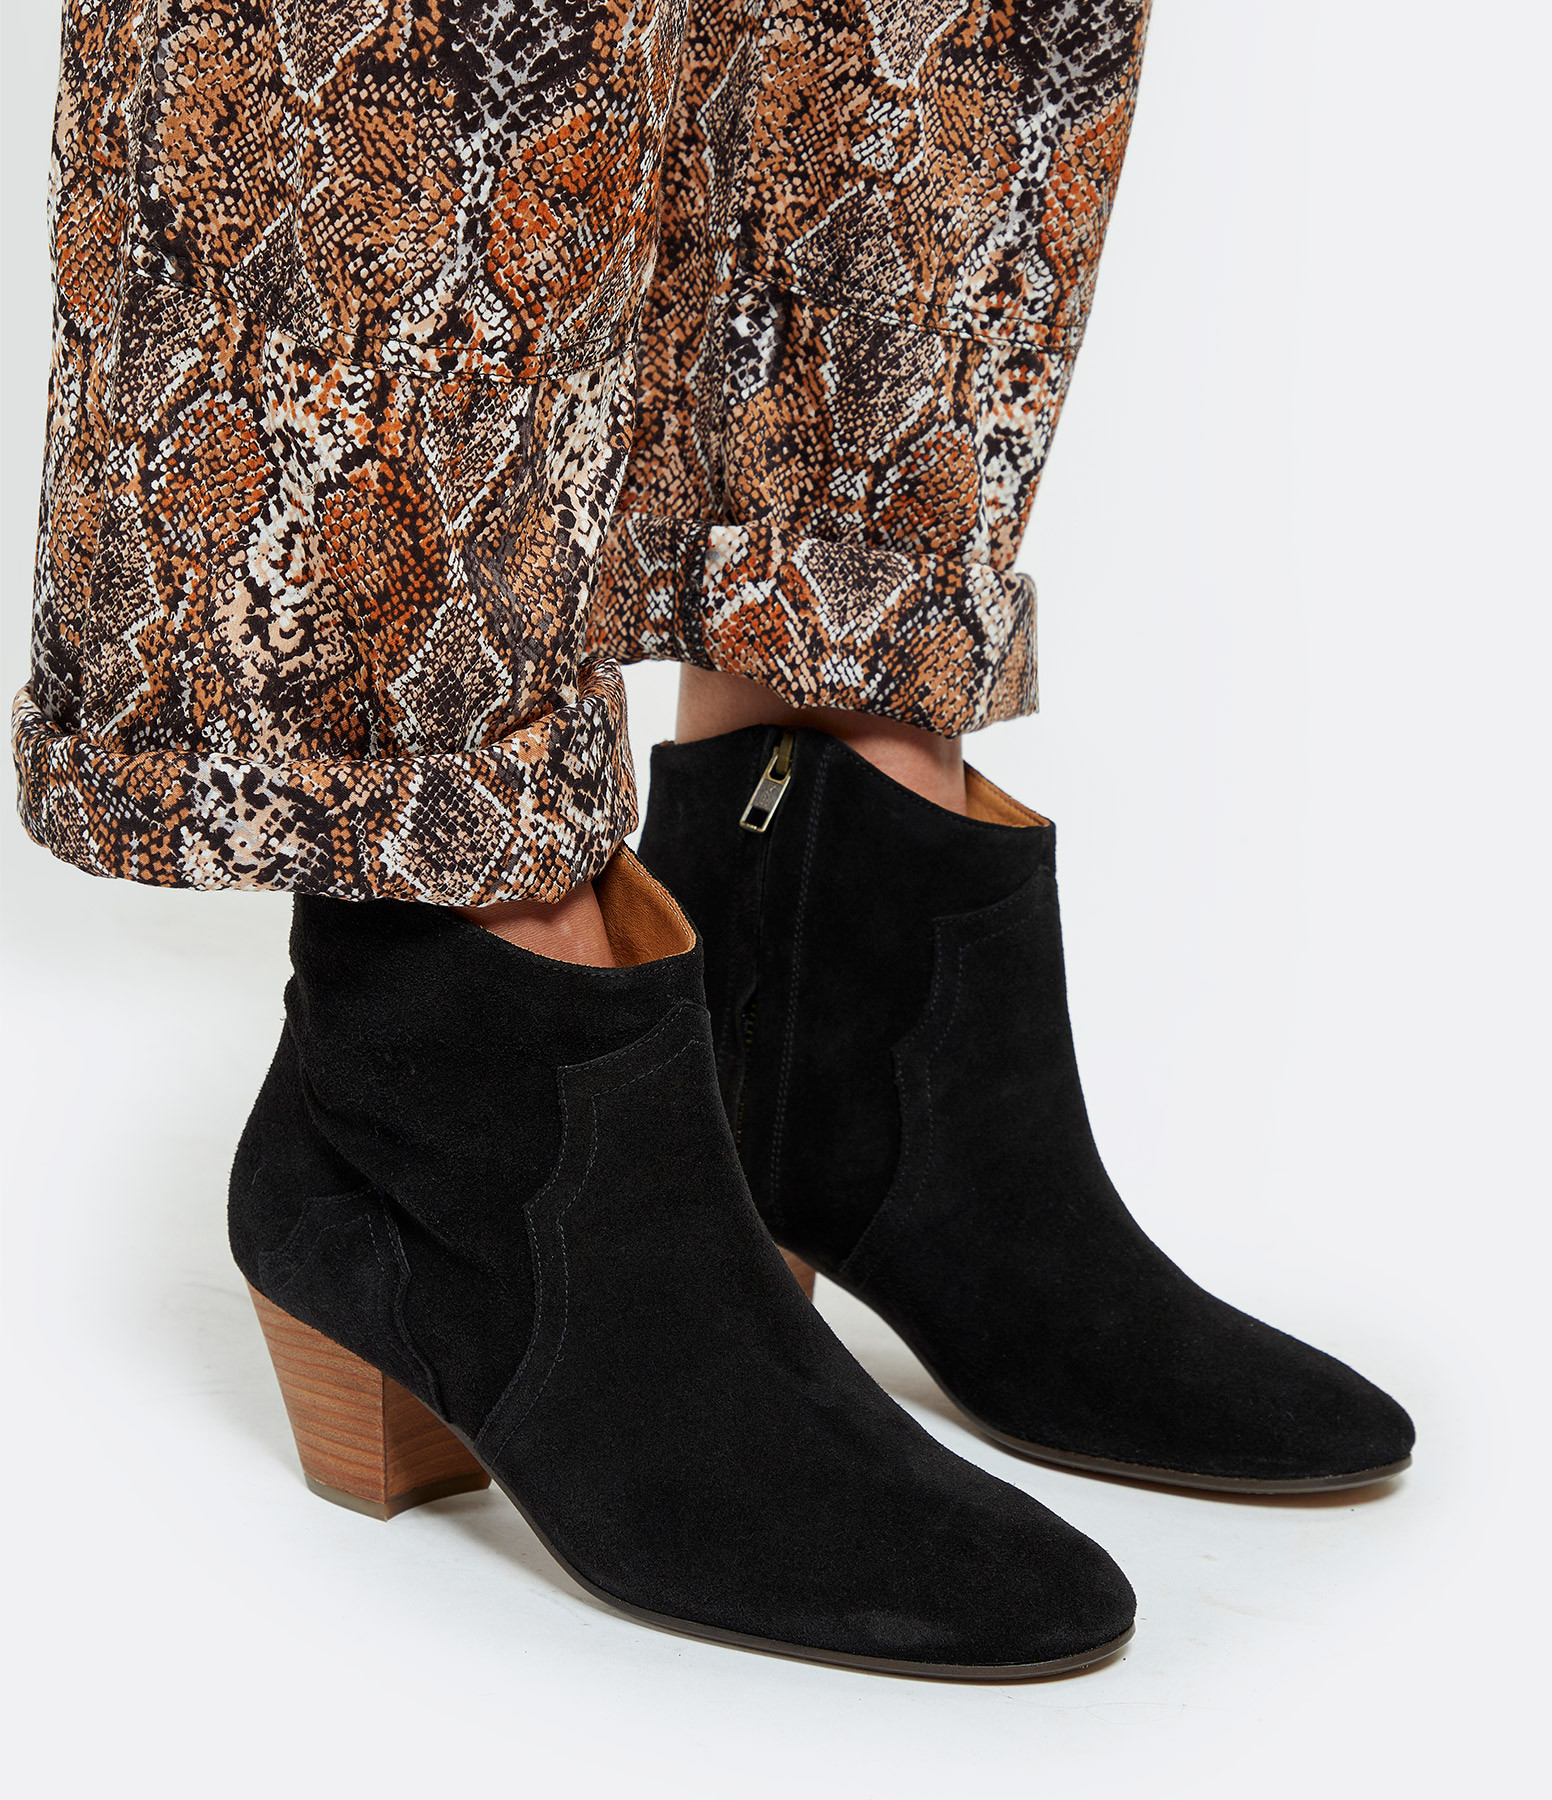 ISABEL MARANT - Bottines Dicker Veau Velours Noir